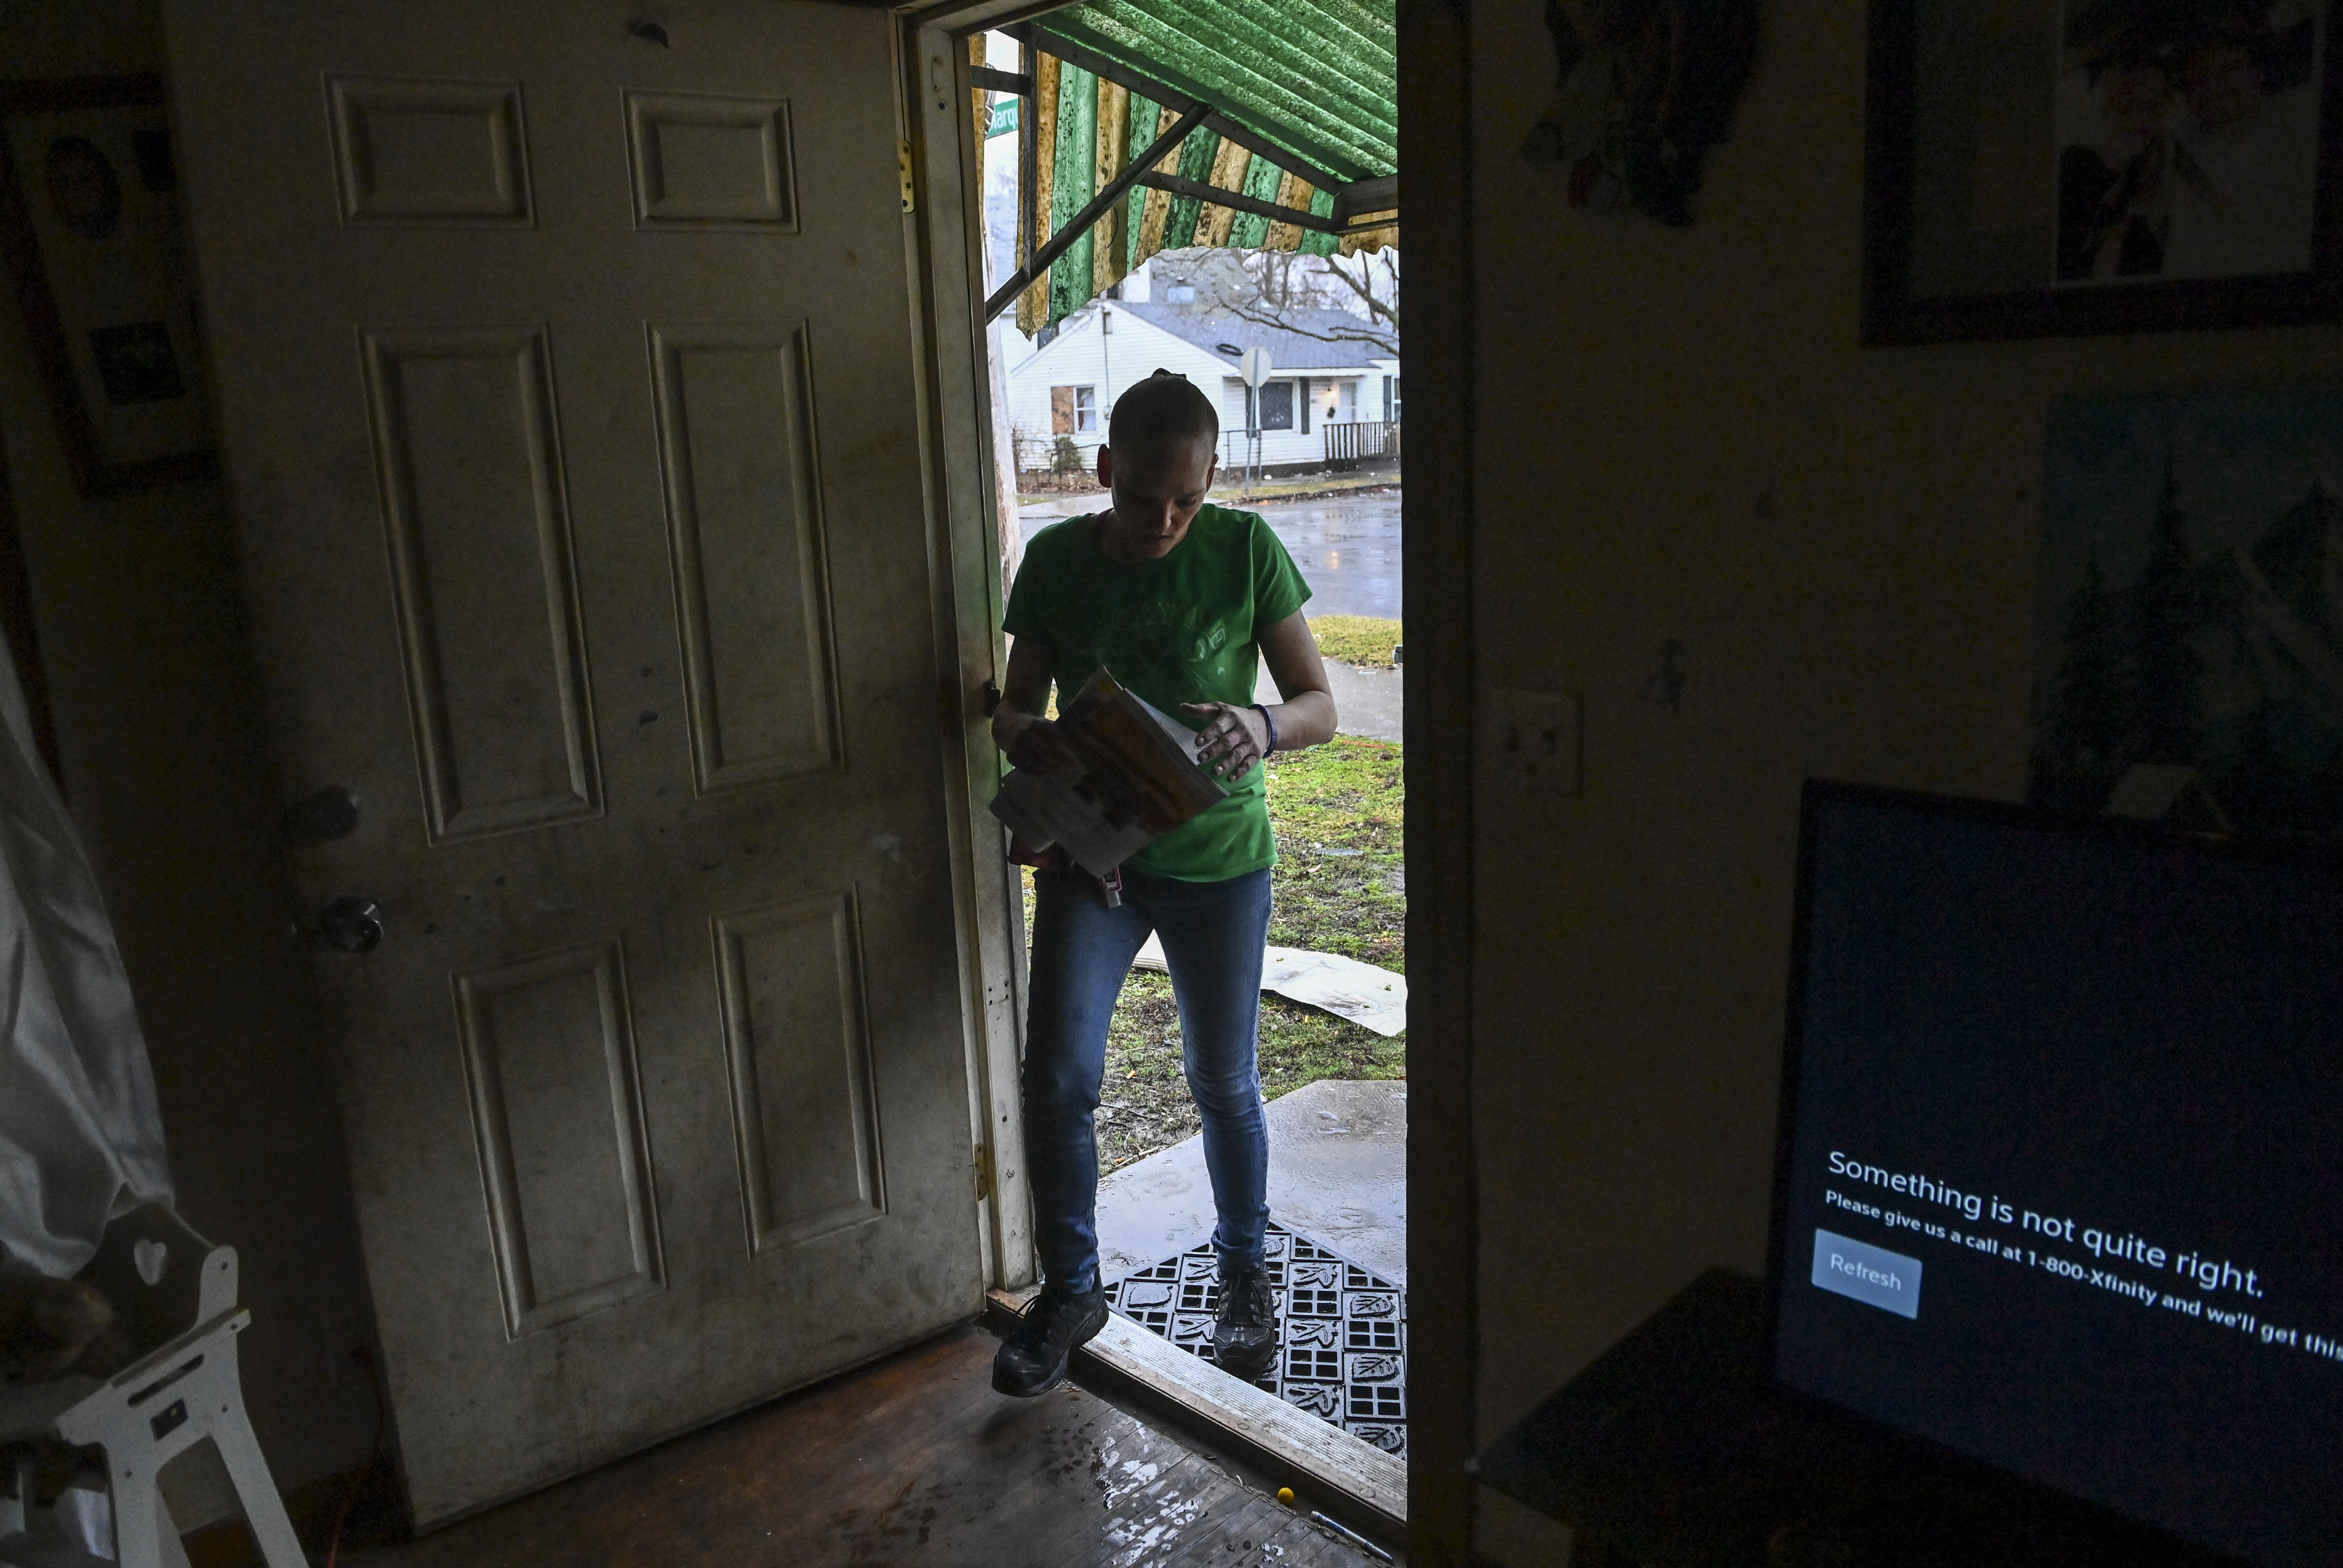 Shawna hopes to find her stimulus check in the mail. MUST CREDIT: Washington Post photo by Ricky Carioti